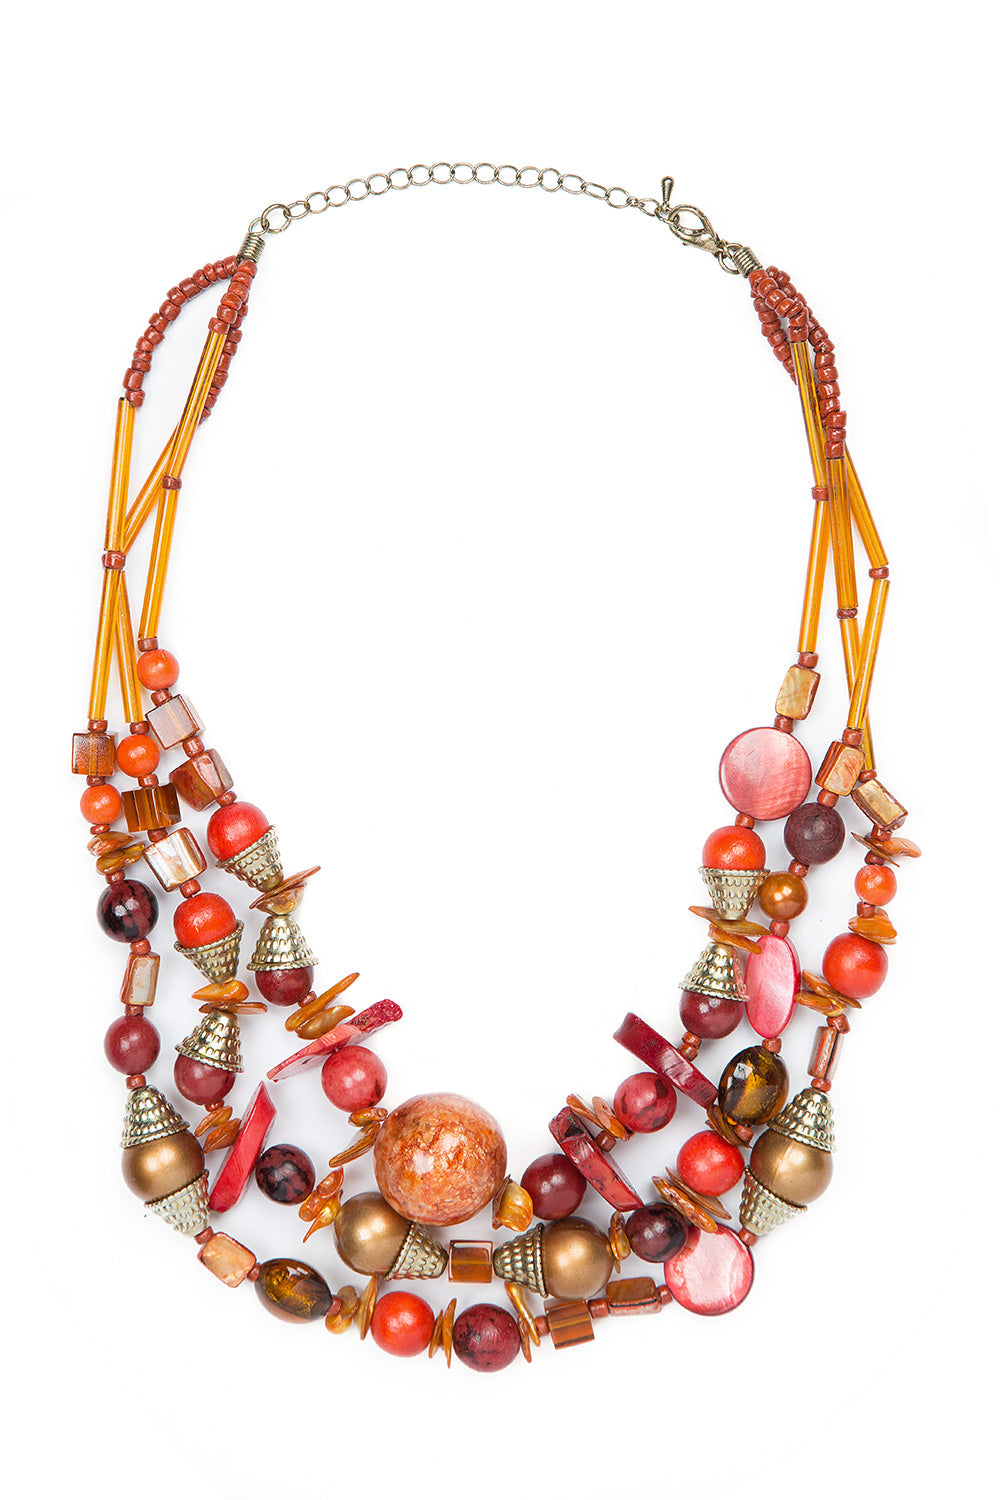 Type 3 Bazaar Necklace